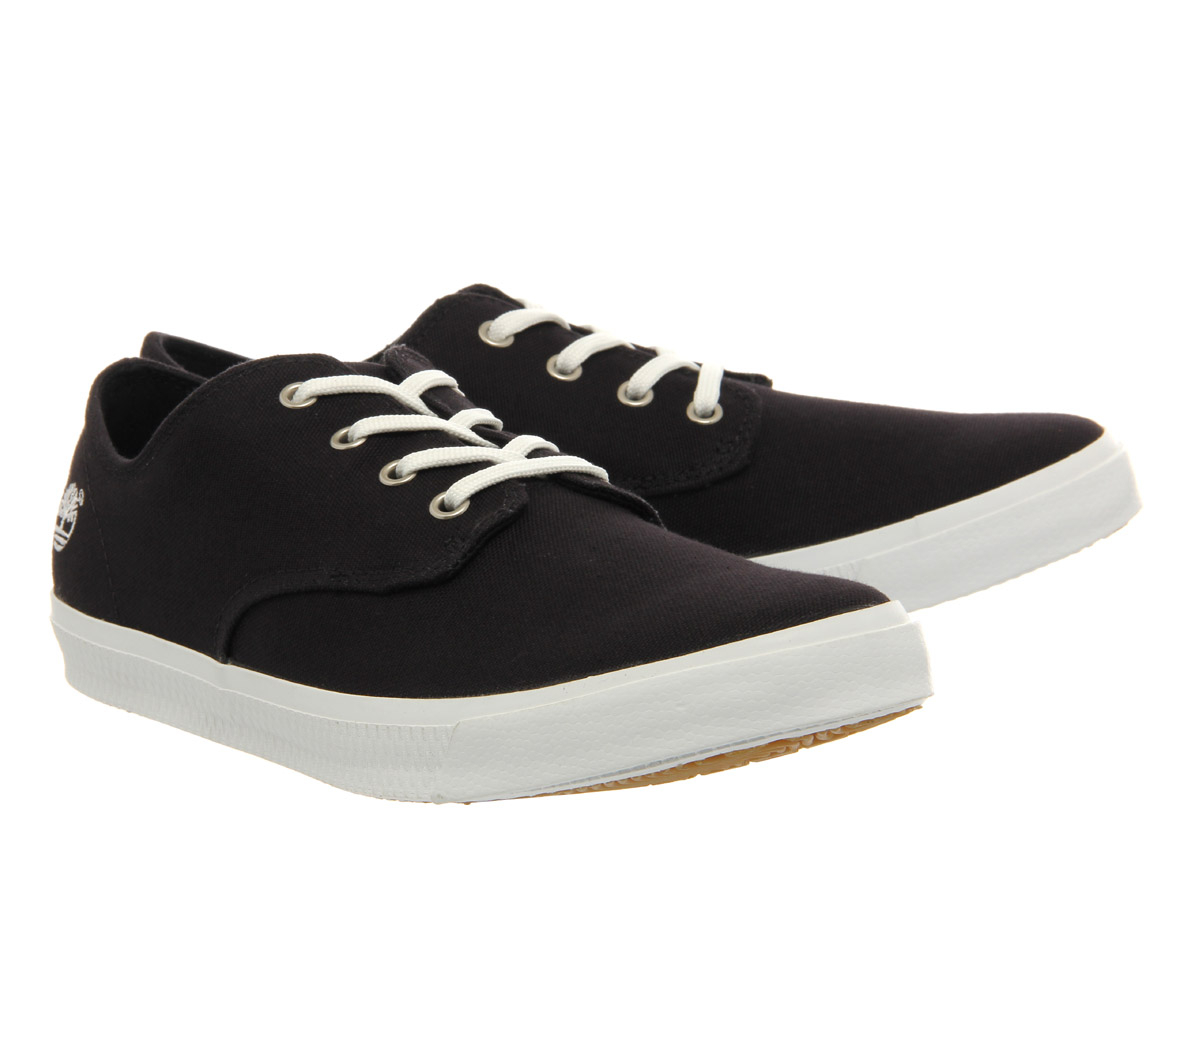 timberland hookset c canvas in black for lyst